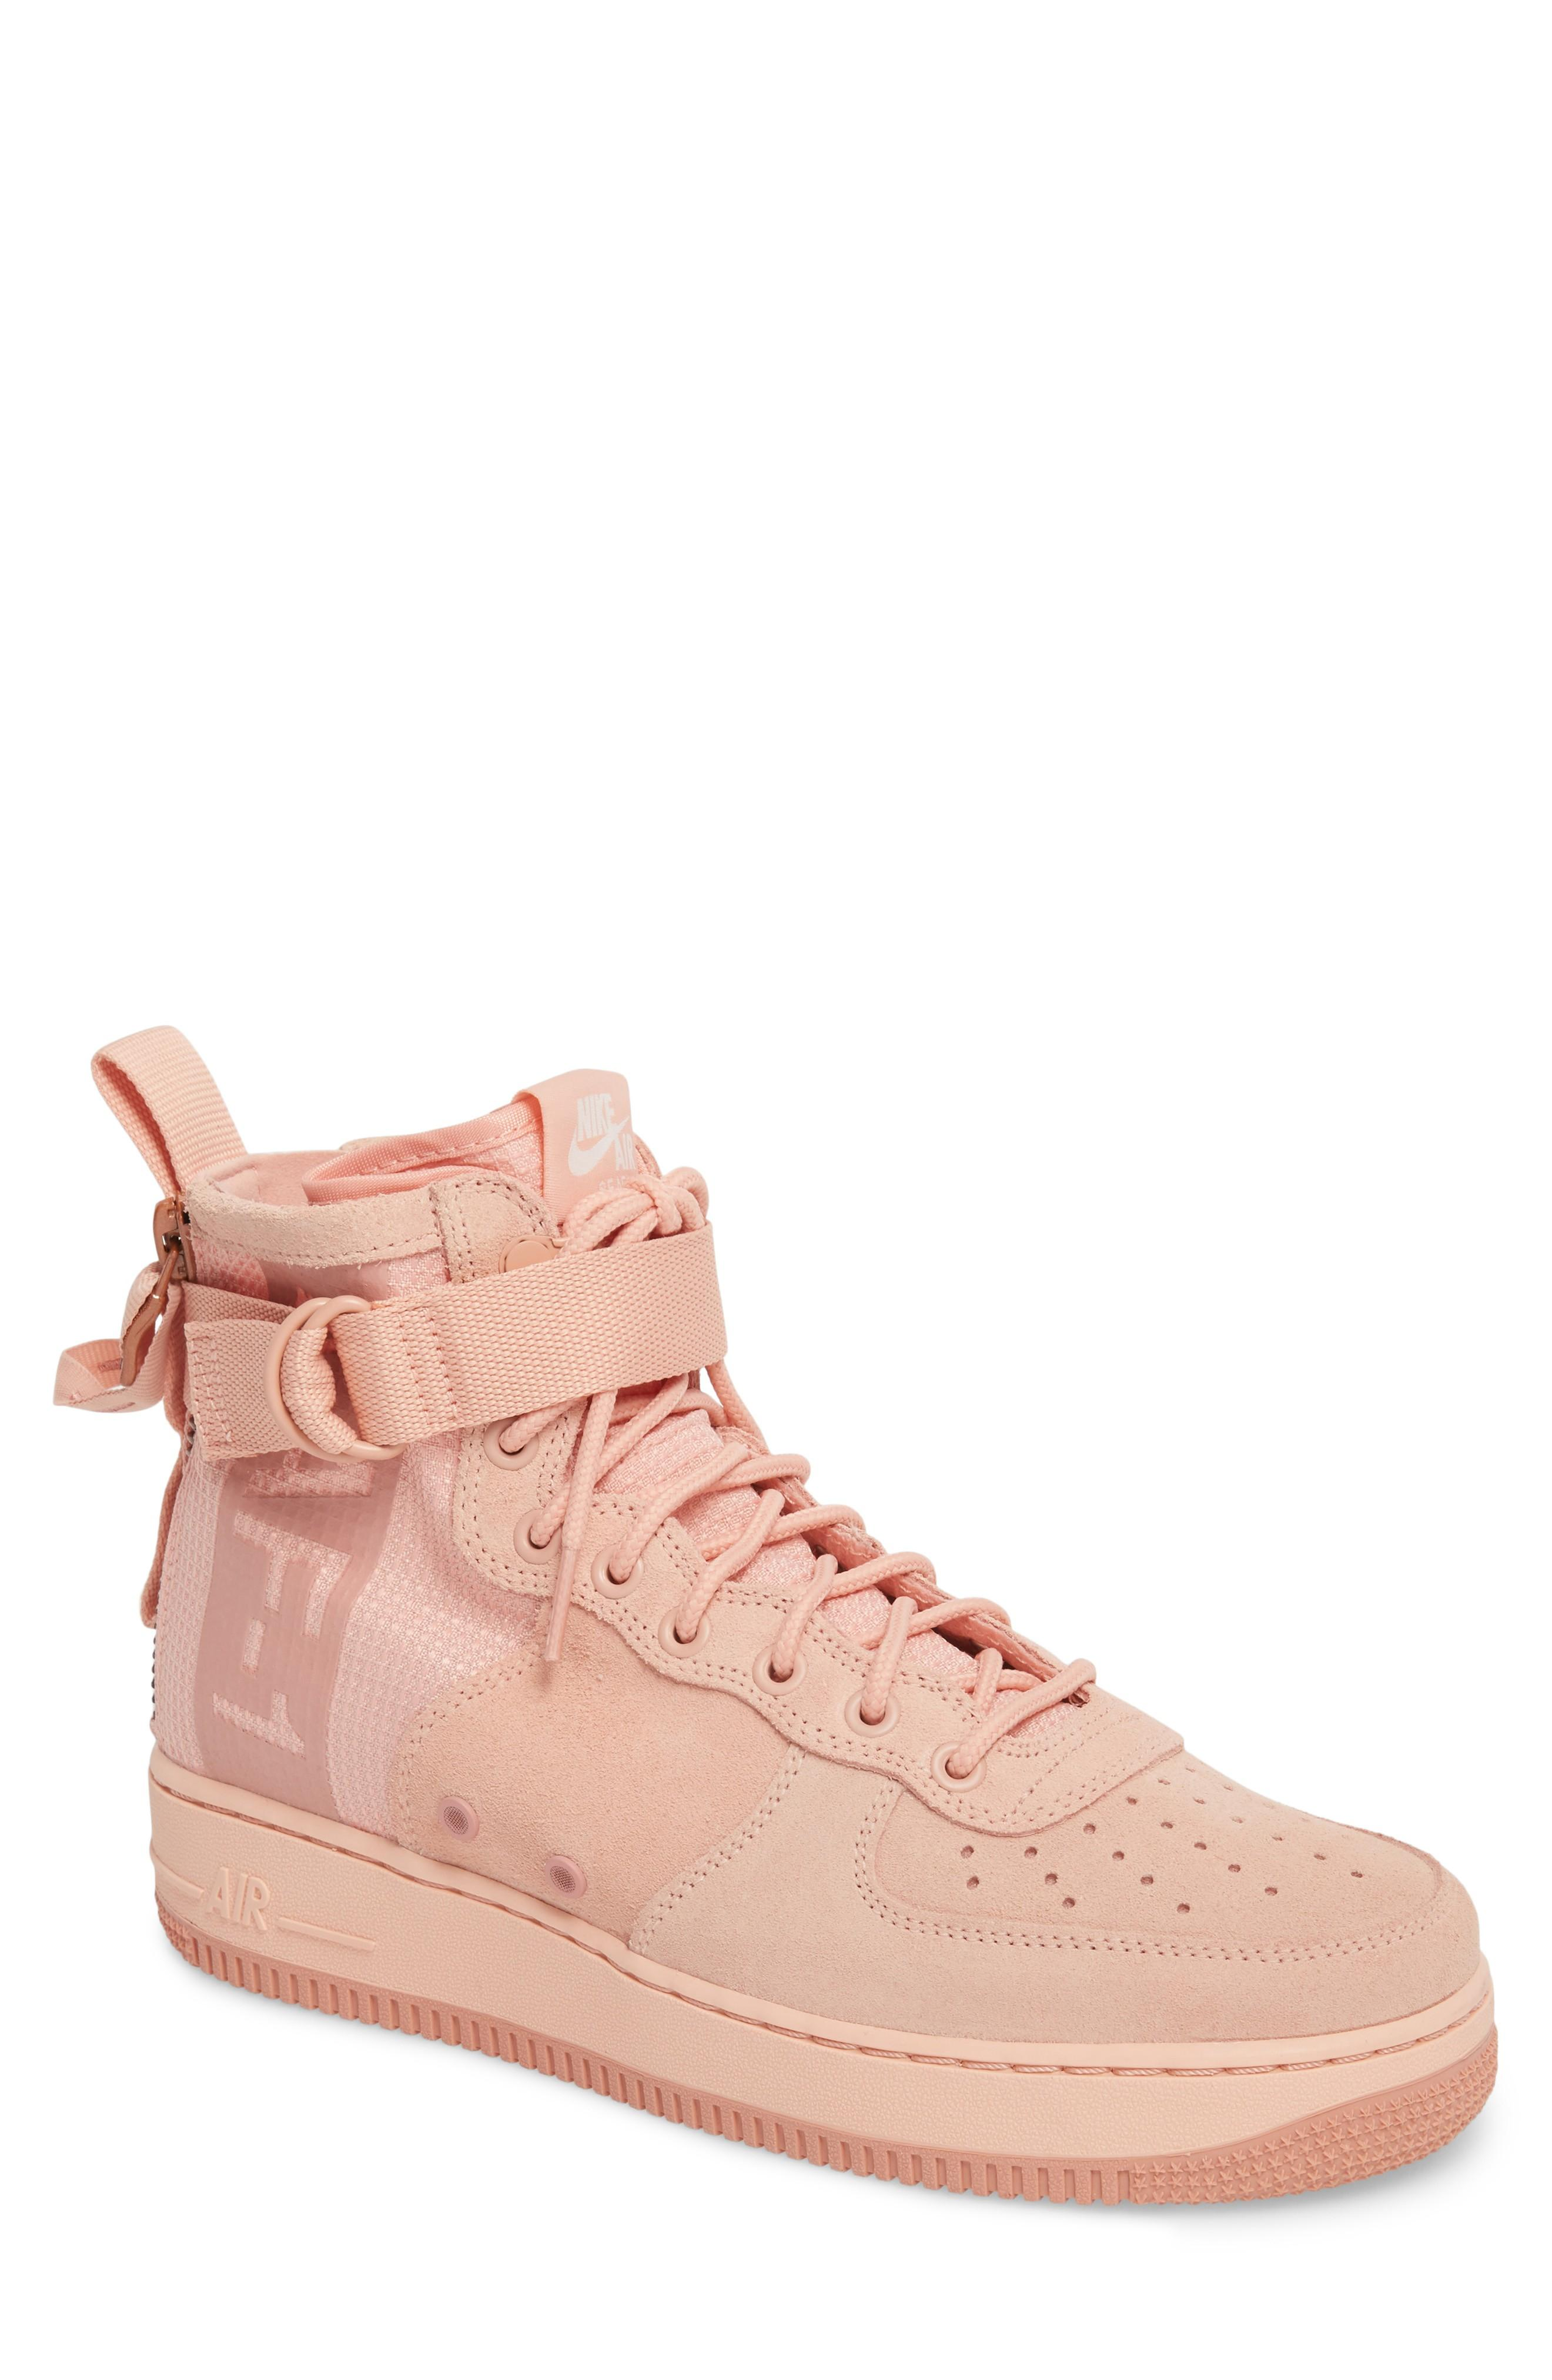 more photos 8033d 75720 Nike Sf Air Force 1 Mid Suede Sneaker In Coral Stardust  Red Stardust